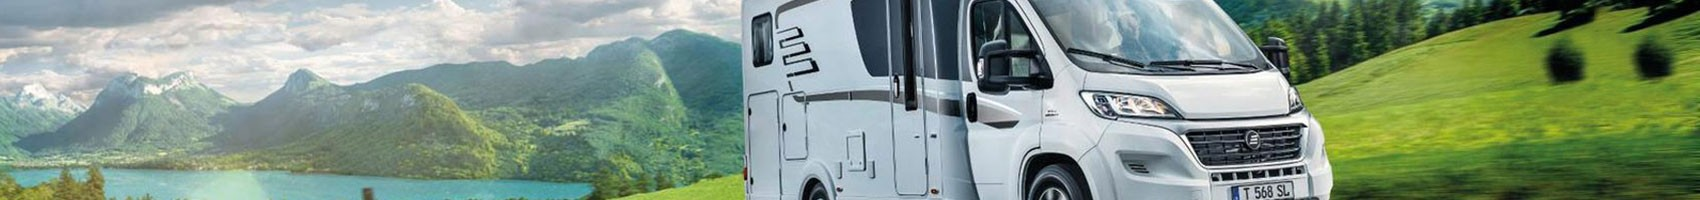 NEW YEARS OFFER FROM AUTO-TRAIL